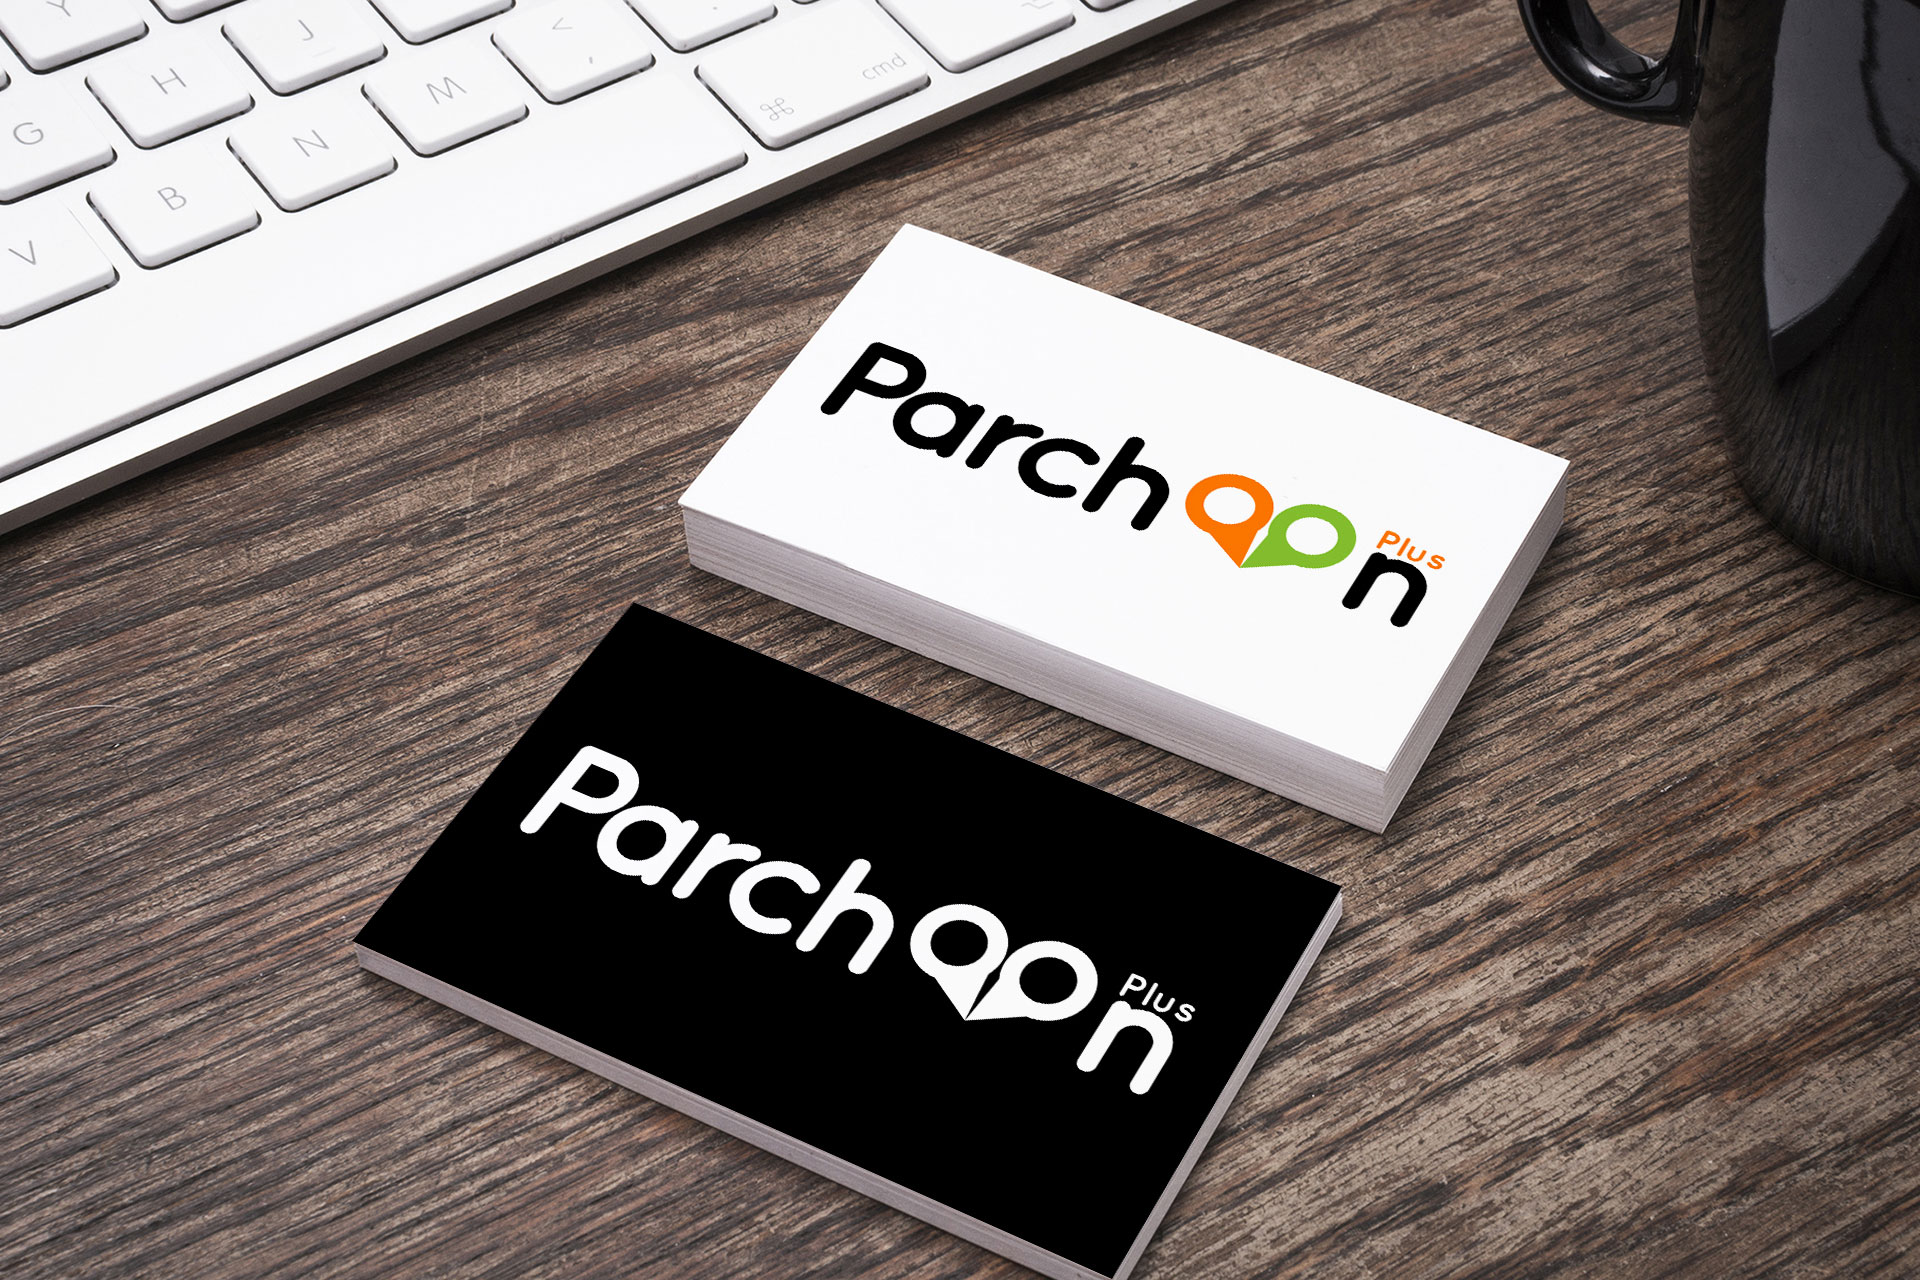 Parchoon-Plus - Graphic Design Portfolio